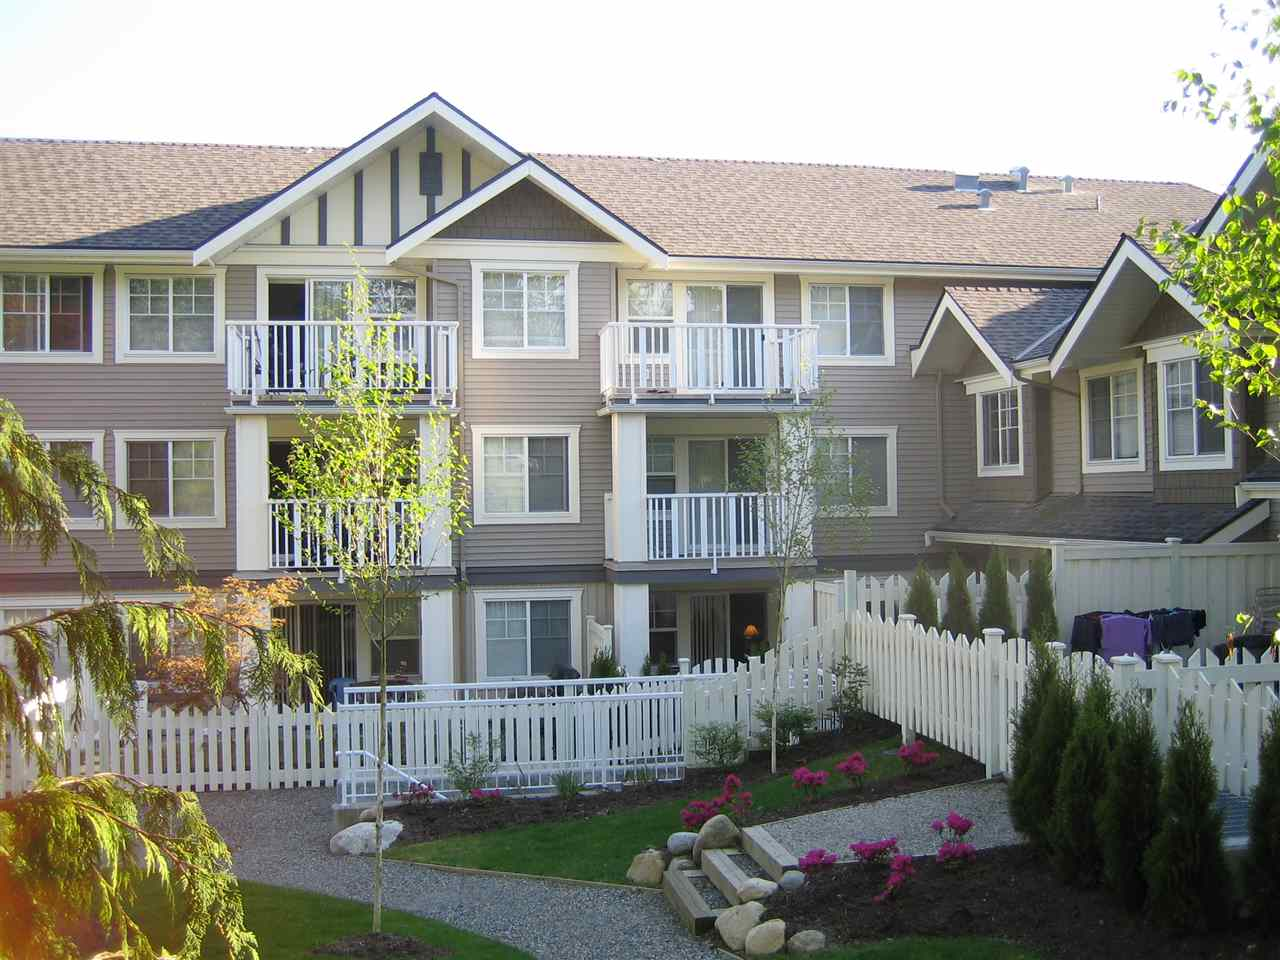 Craftman style 2BR & den condo at Botanica built by award winning builder Ledingham McAllister. Only 13 year old unit with large living room & dining room, open concept kitchen, insuite laundry. Spacious master BR + den & good size second BR. 4pcs bath with cheater ensuite to master BR. Laminate flooring throughout the unit. Cozy electric fireplace and covered balcony facing courtyard. Secured 1 parking, storage locker & bike room. Centrally located in Burnaby, few minutes walk to Highgate Village (Save On Foods, restaurants, banks), steps to parks, walking distance to Edmonds Skytrain station. 10min drive to Metrotown & Burnaby Library. Close to Tyler Park Elementary & Byrne Creek Secondary schools. OPEN HOUSE: SUN, DEC 10, 2-4PM